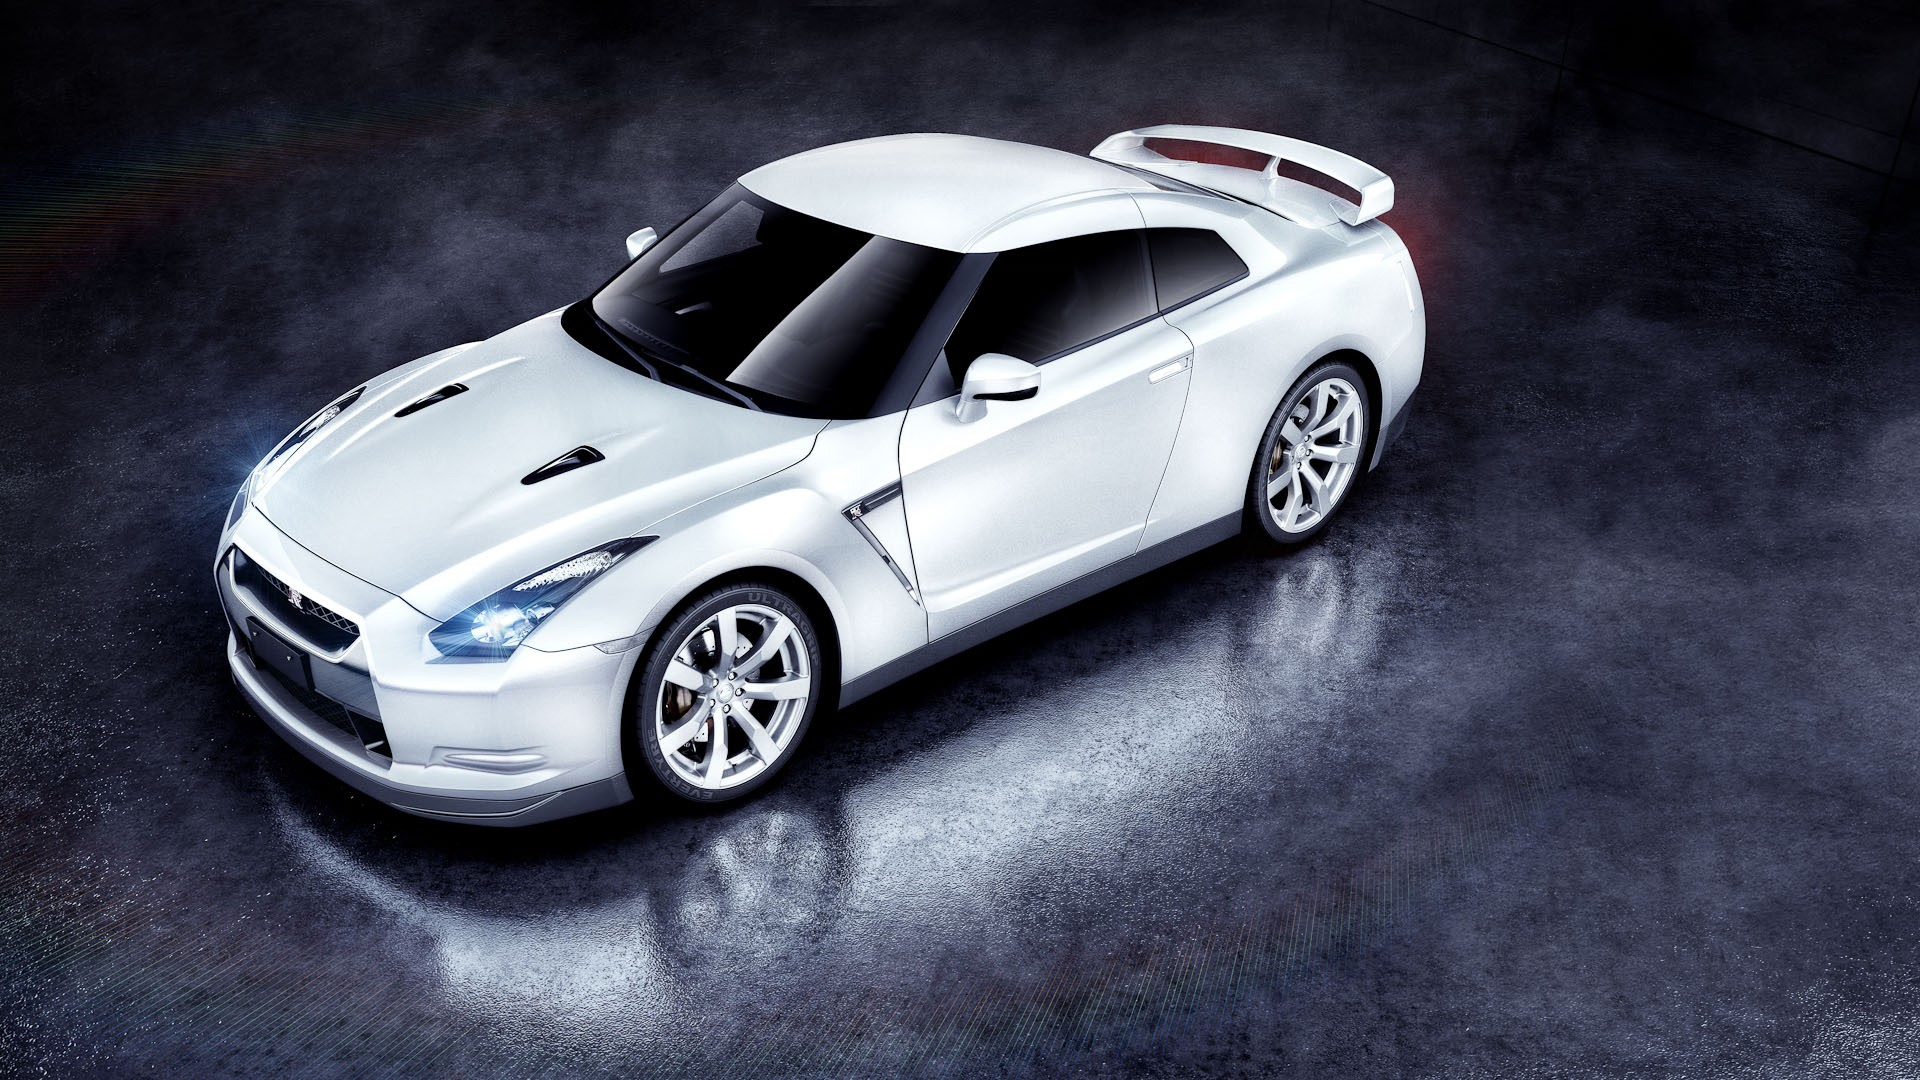 download wallpaper nissan white - photo #37